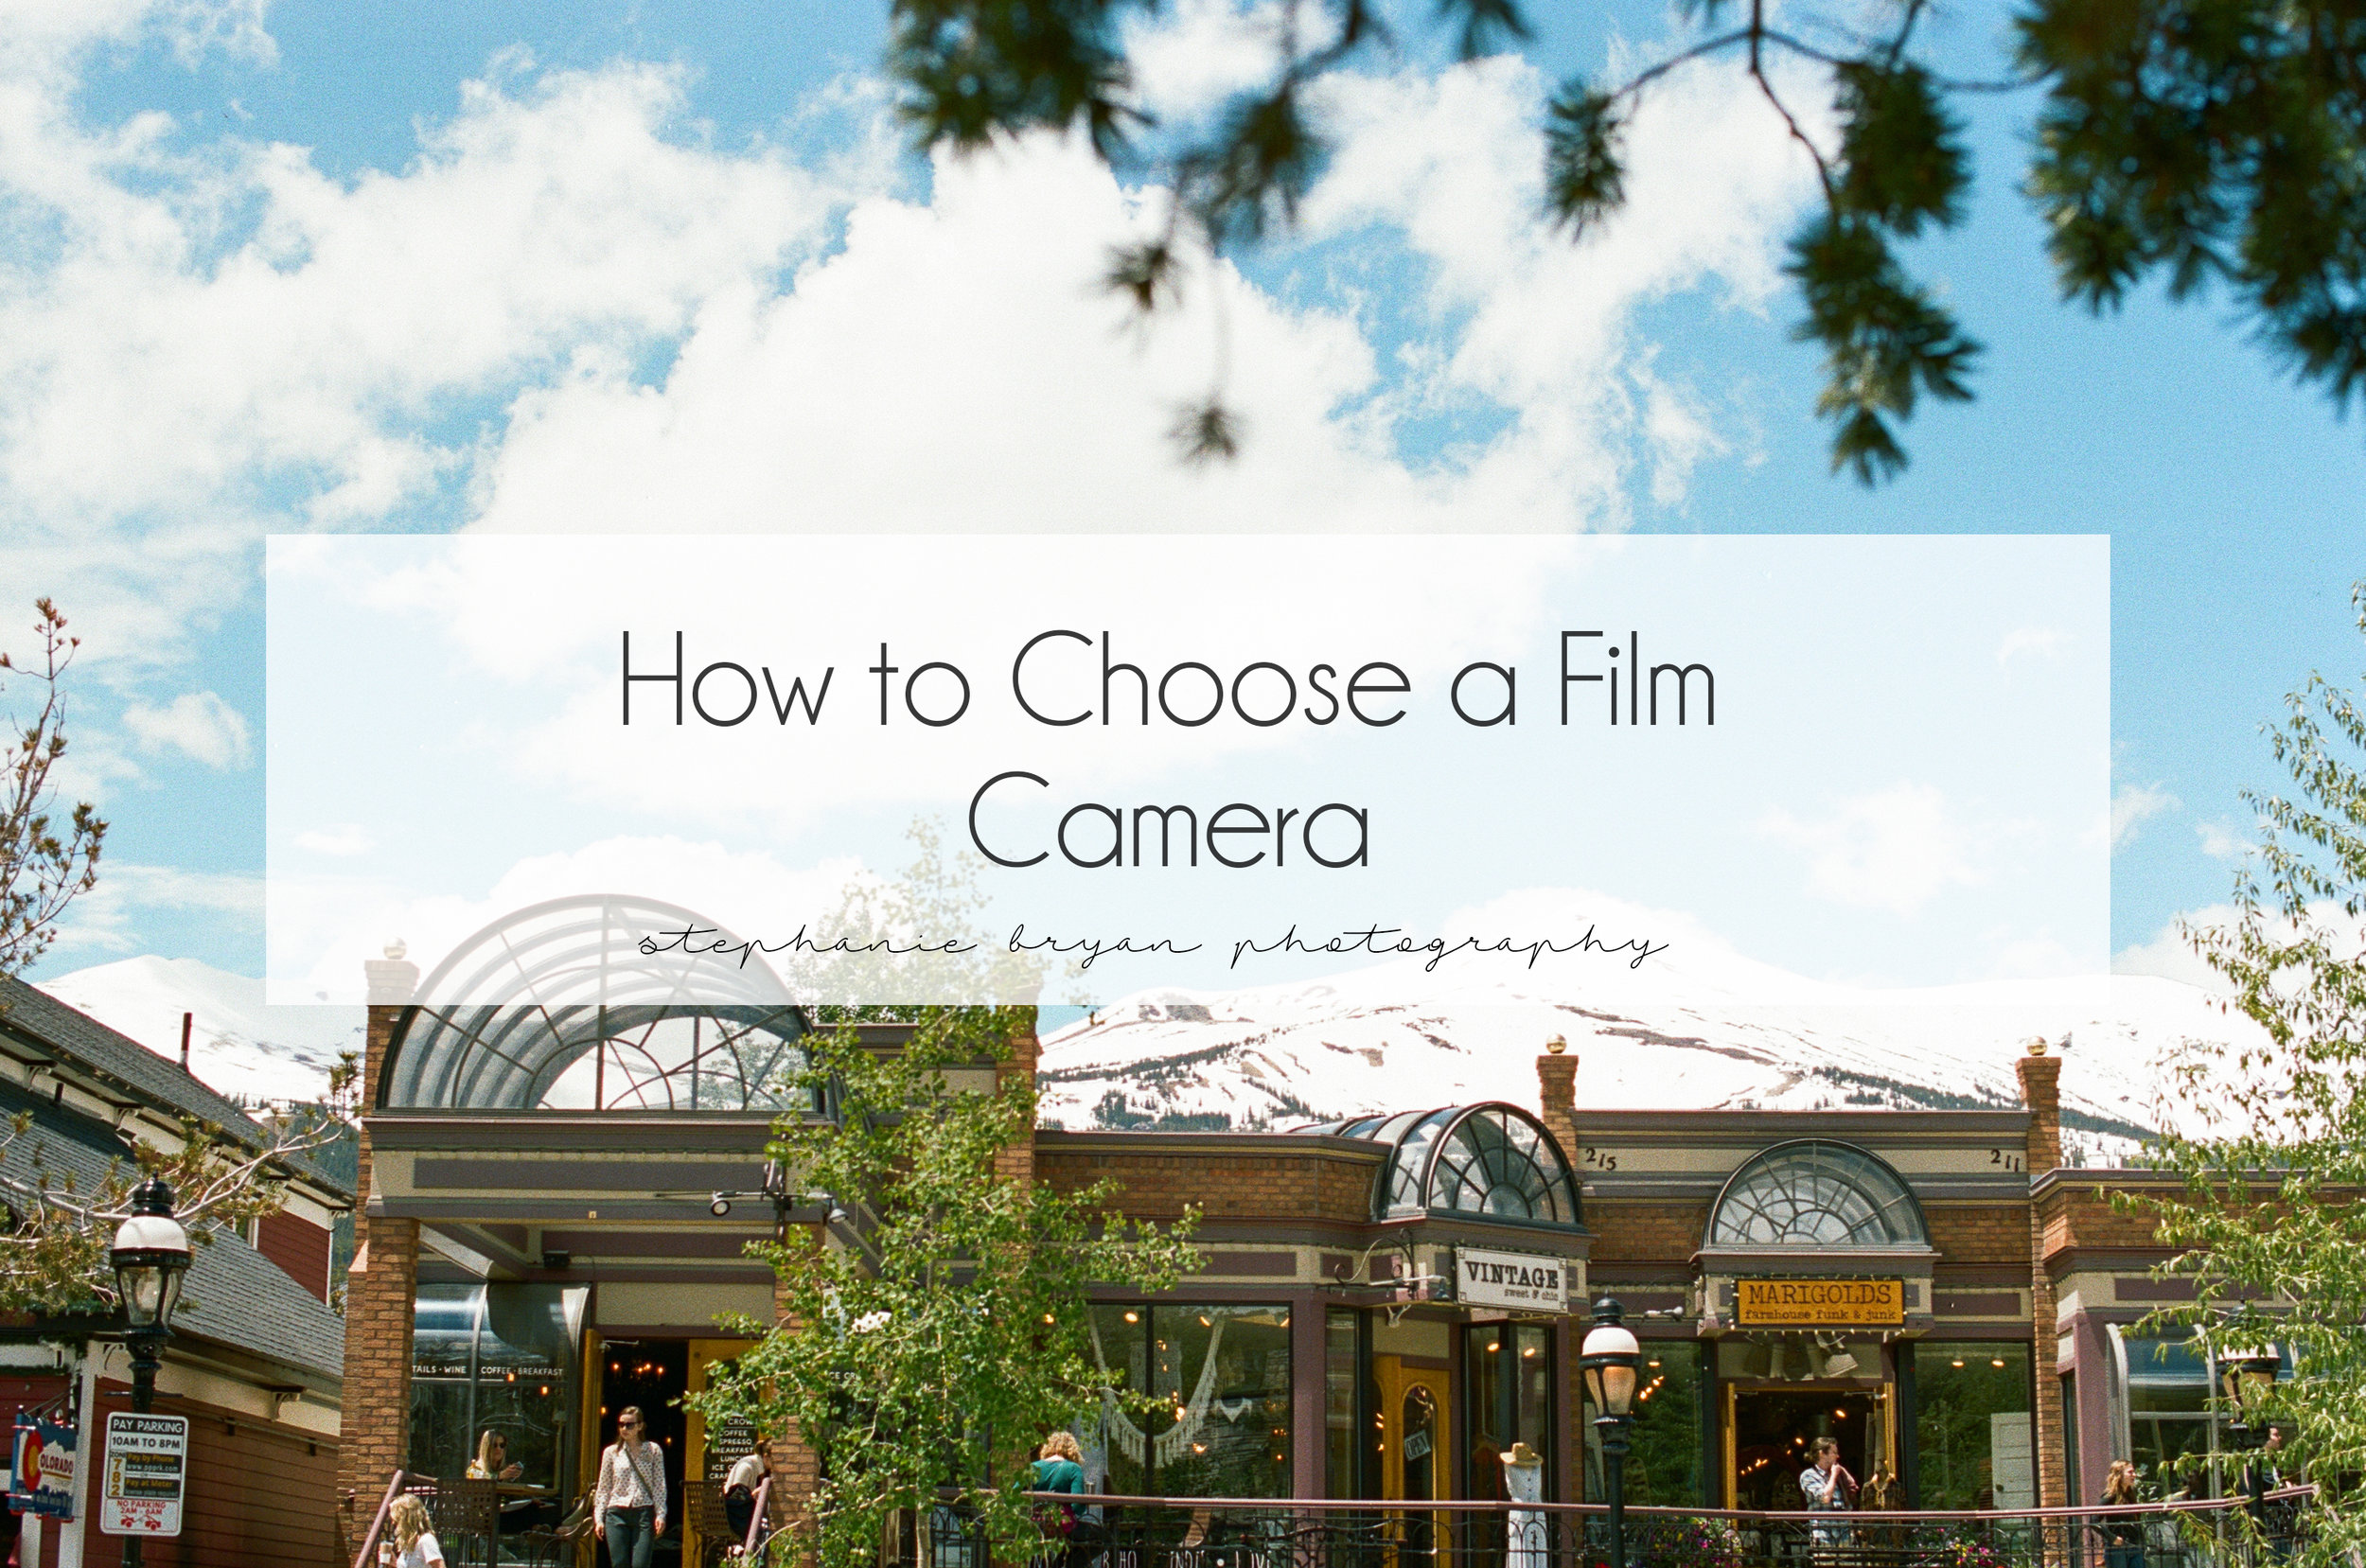 how-to-choose-a-film-camera-analogue-photography-tutorial.jpg